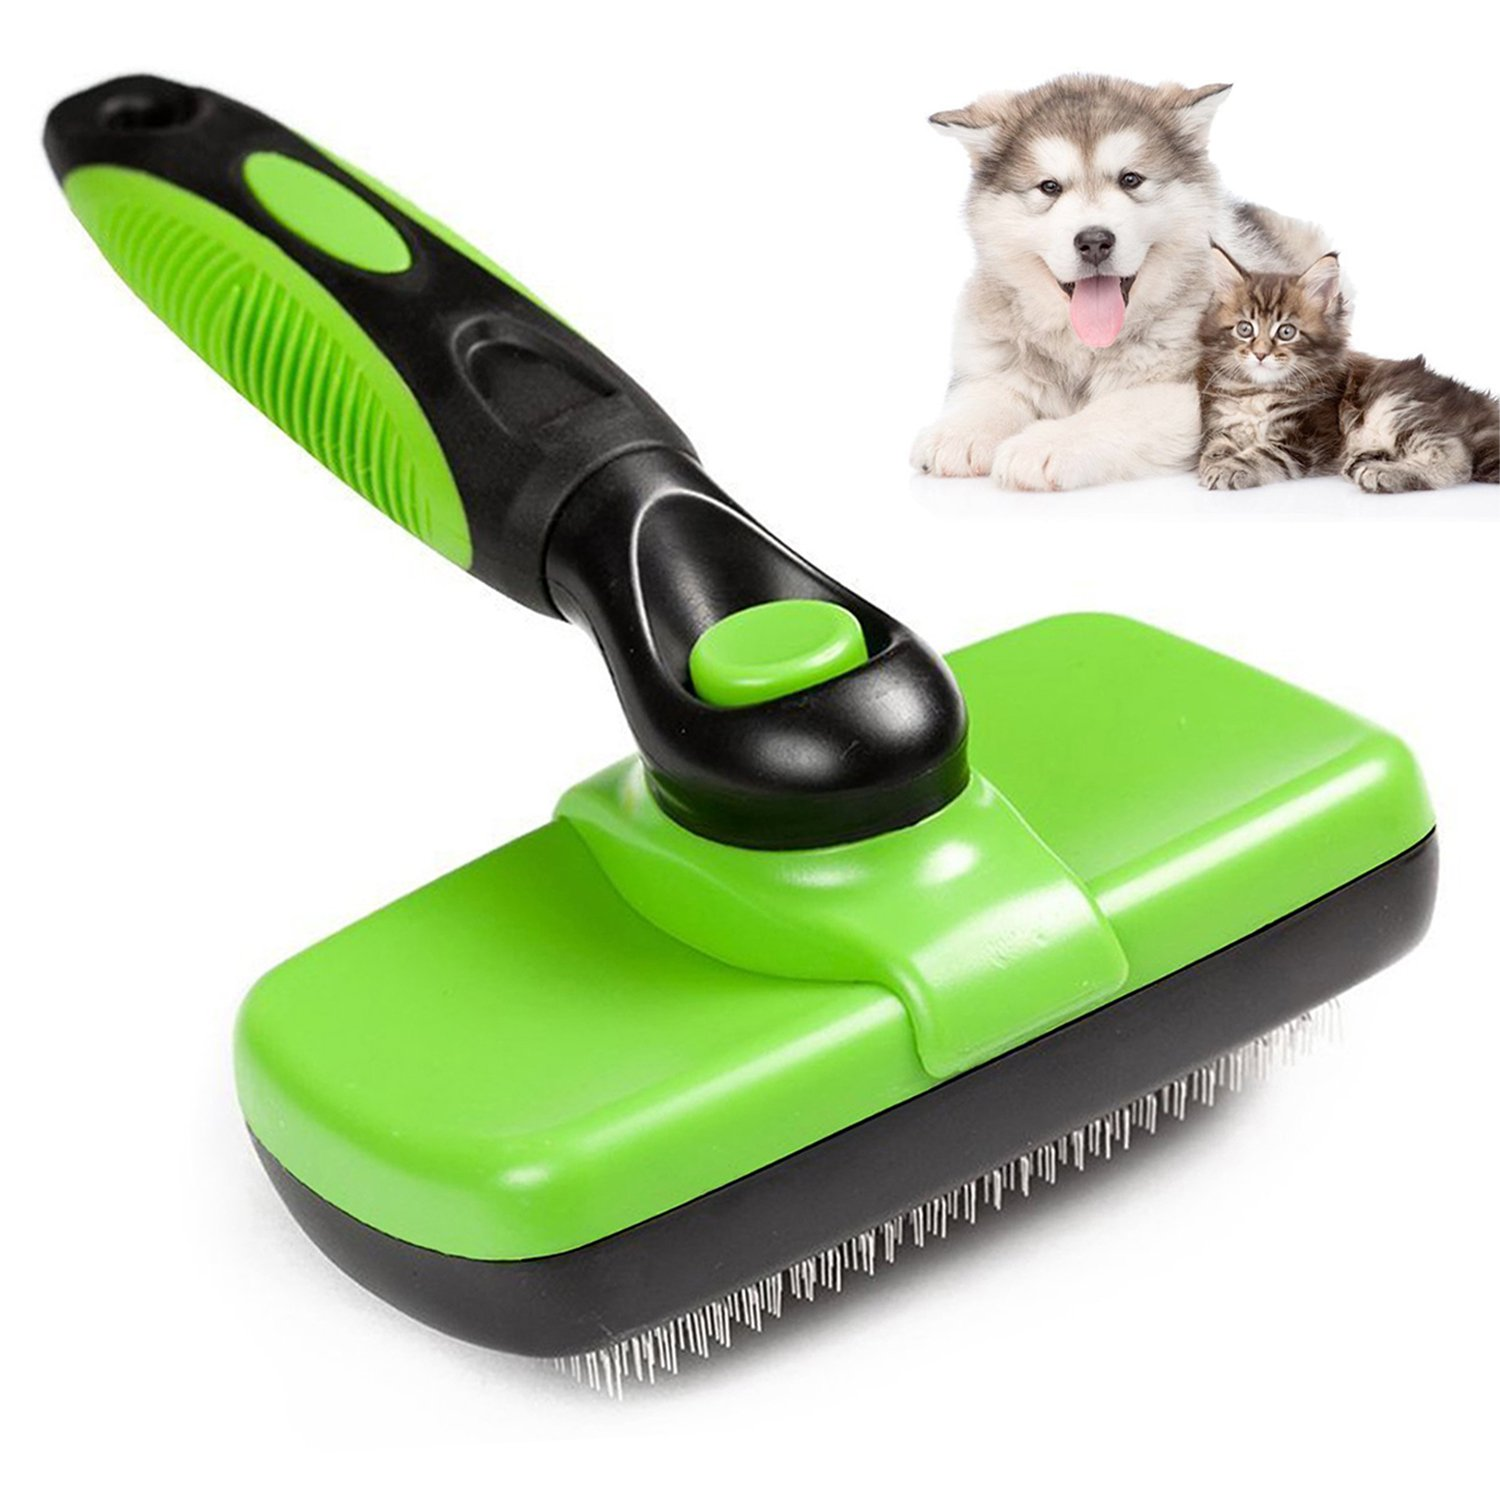 Slicker Cleaning Brush, Dog Cat Brush for Remove Dog Cat Hair